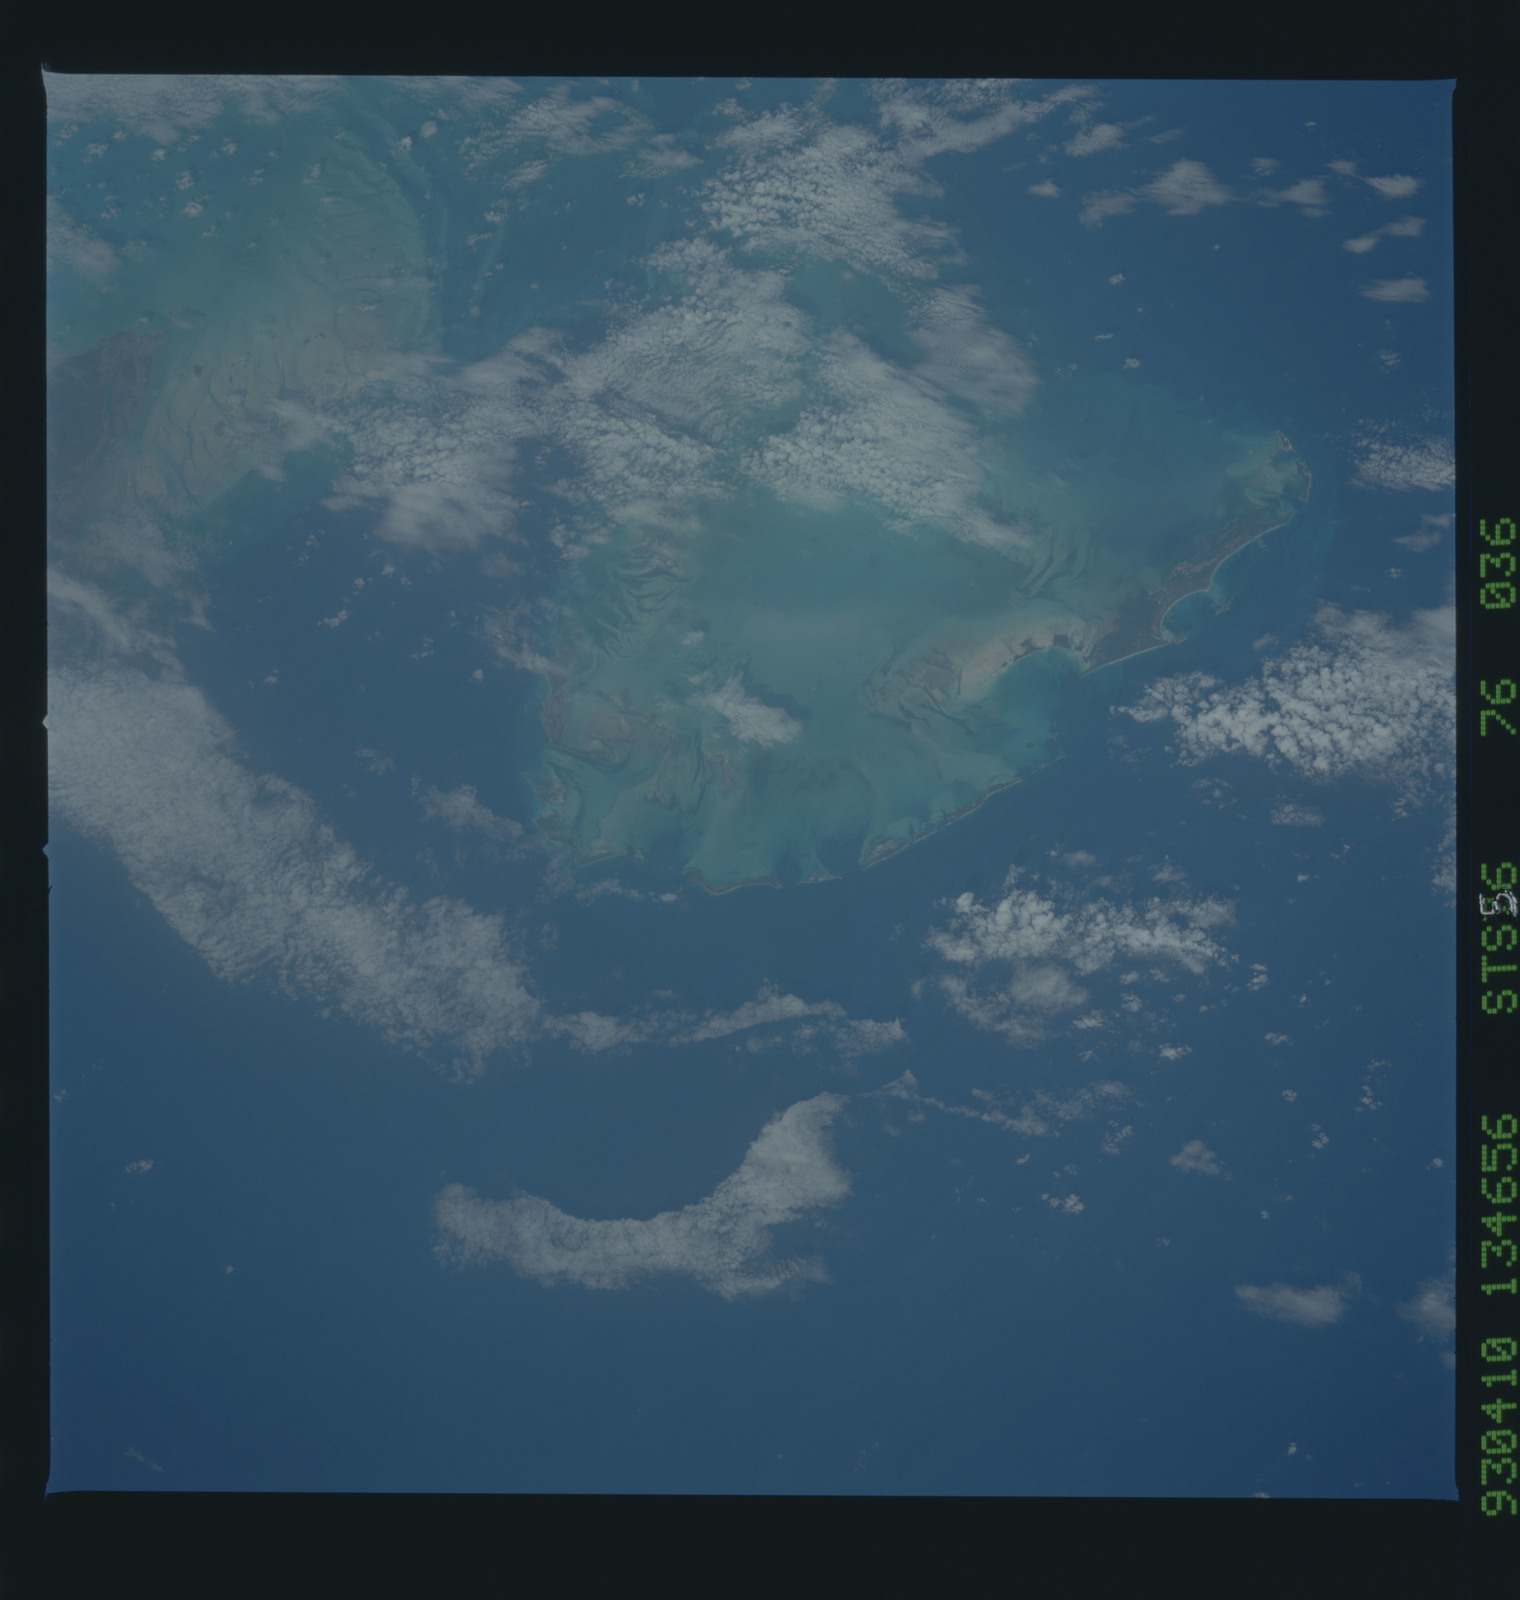 STS056-76-036 - STS-056 - Earth observations taken from Discovery during STS-56 mission